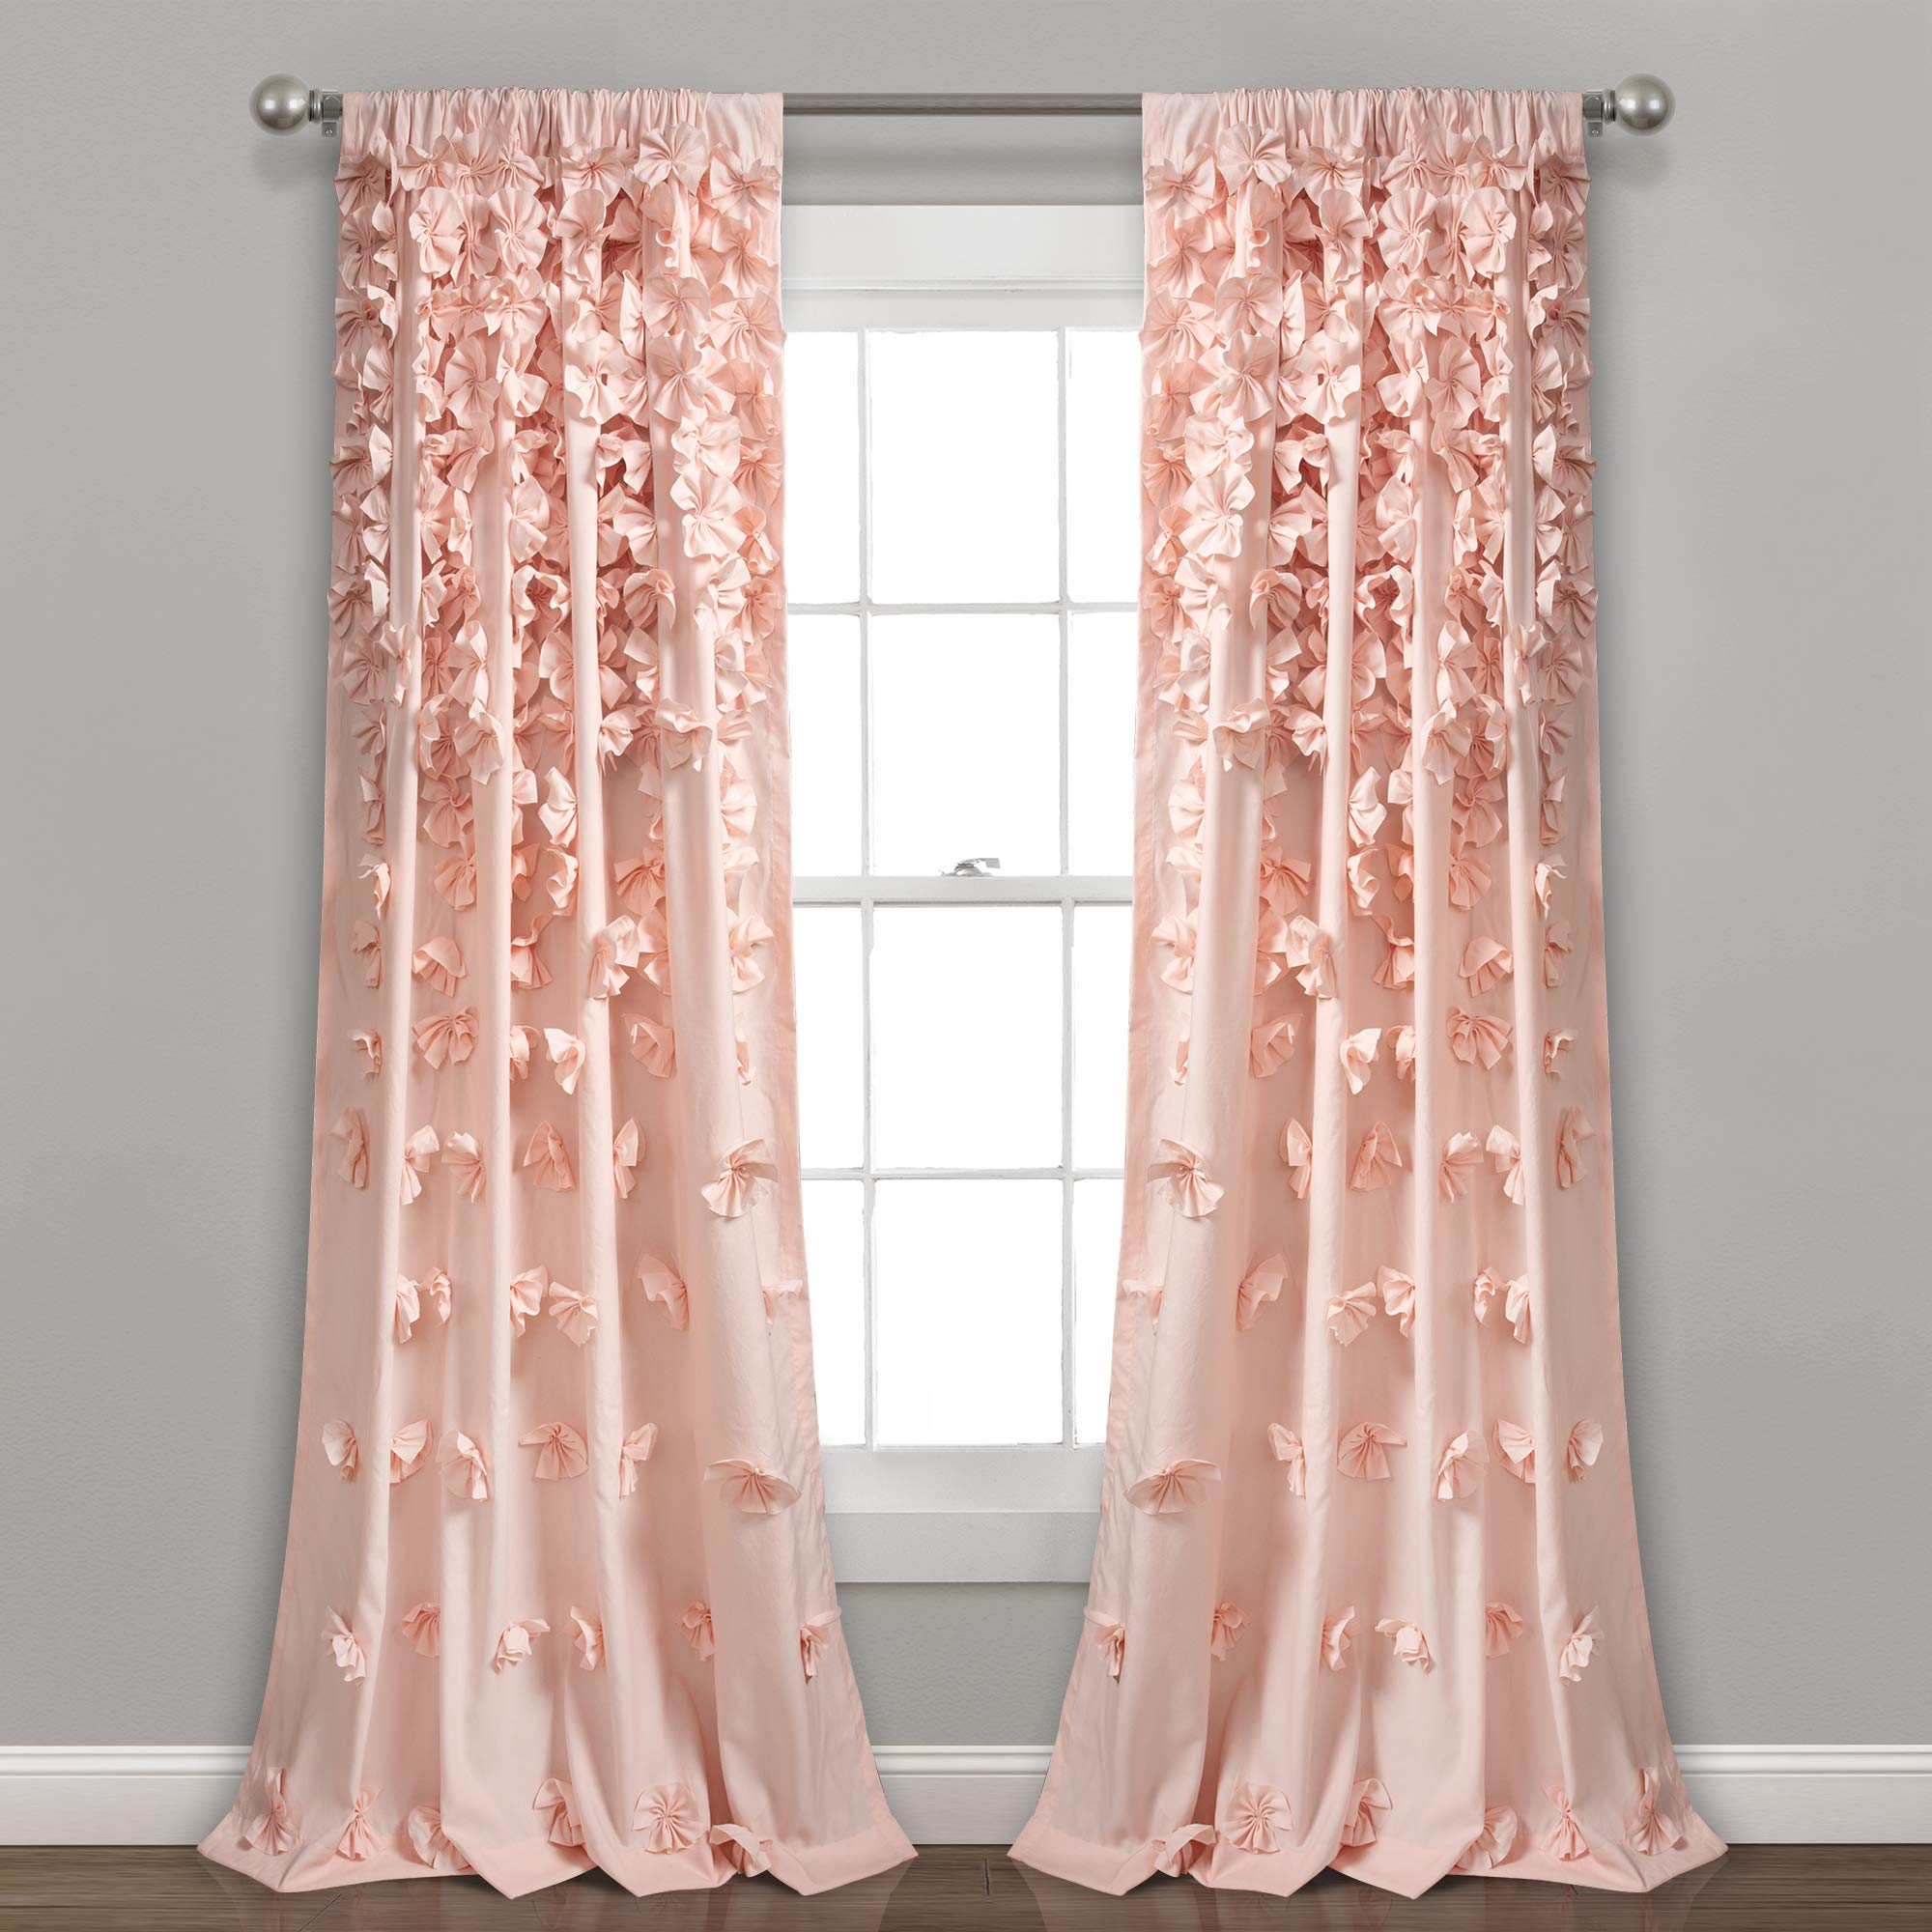 Swag Curtain Patterns Free Patterns